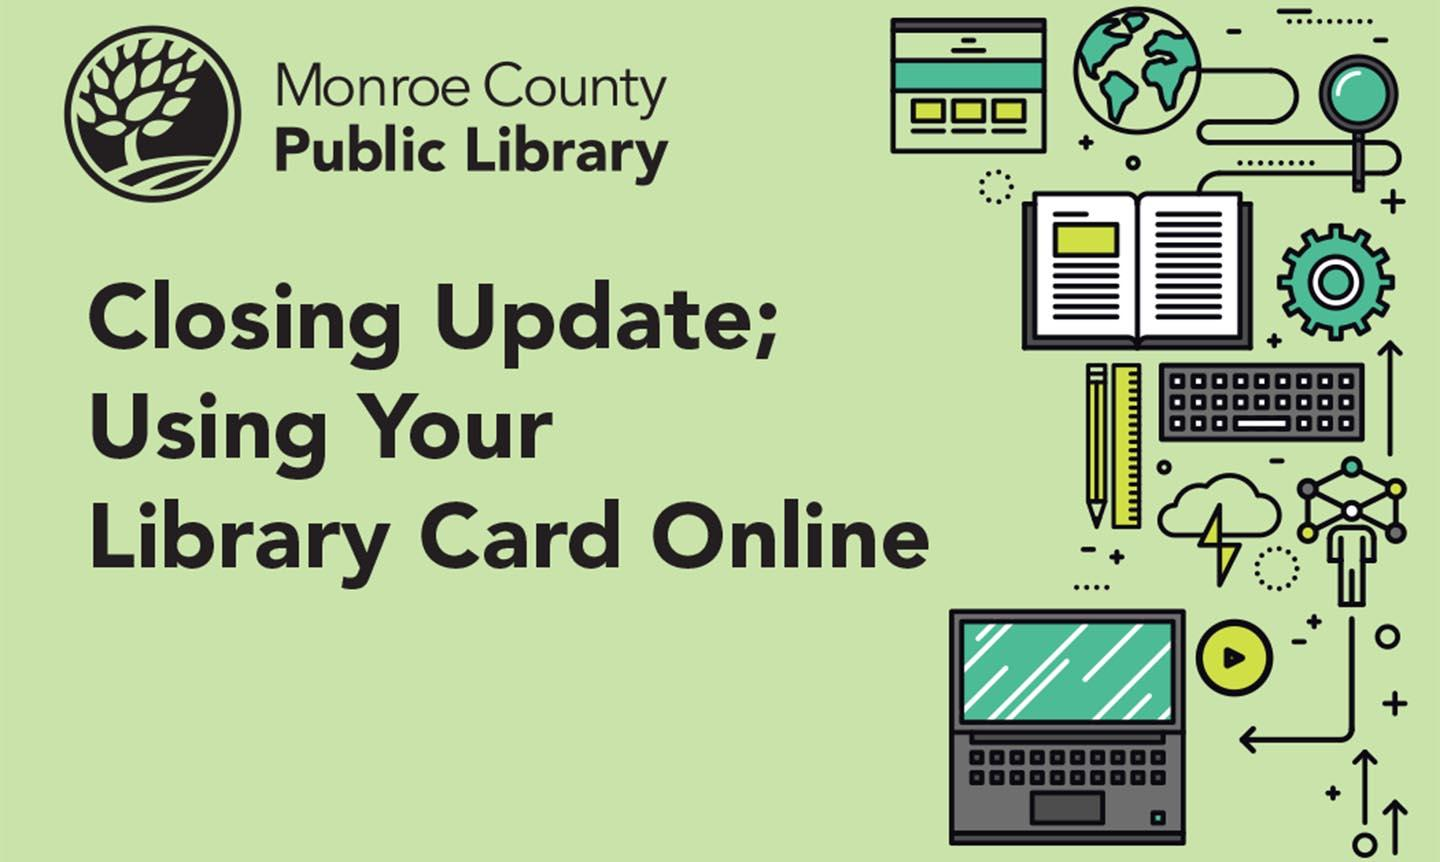 Closing Update; Using Your Library Card Online